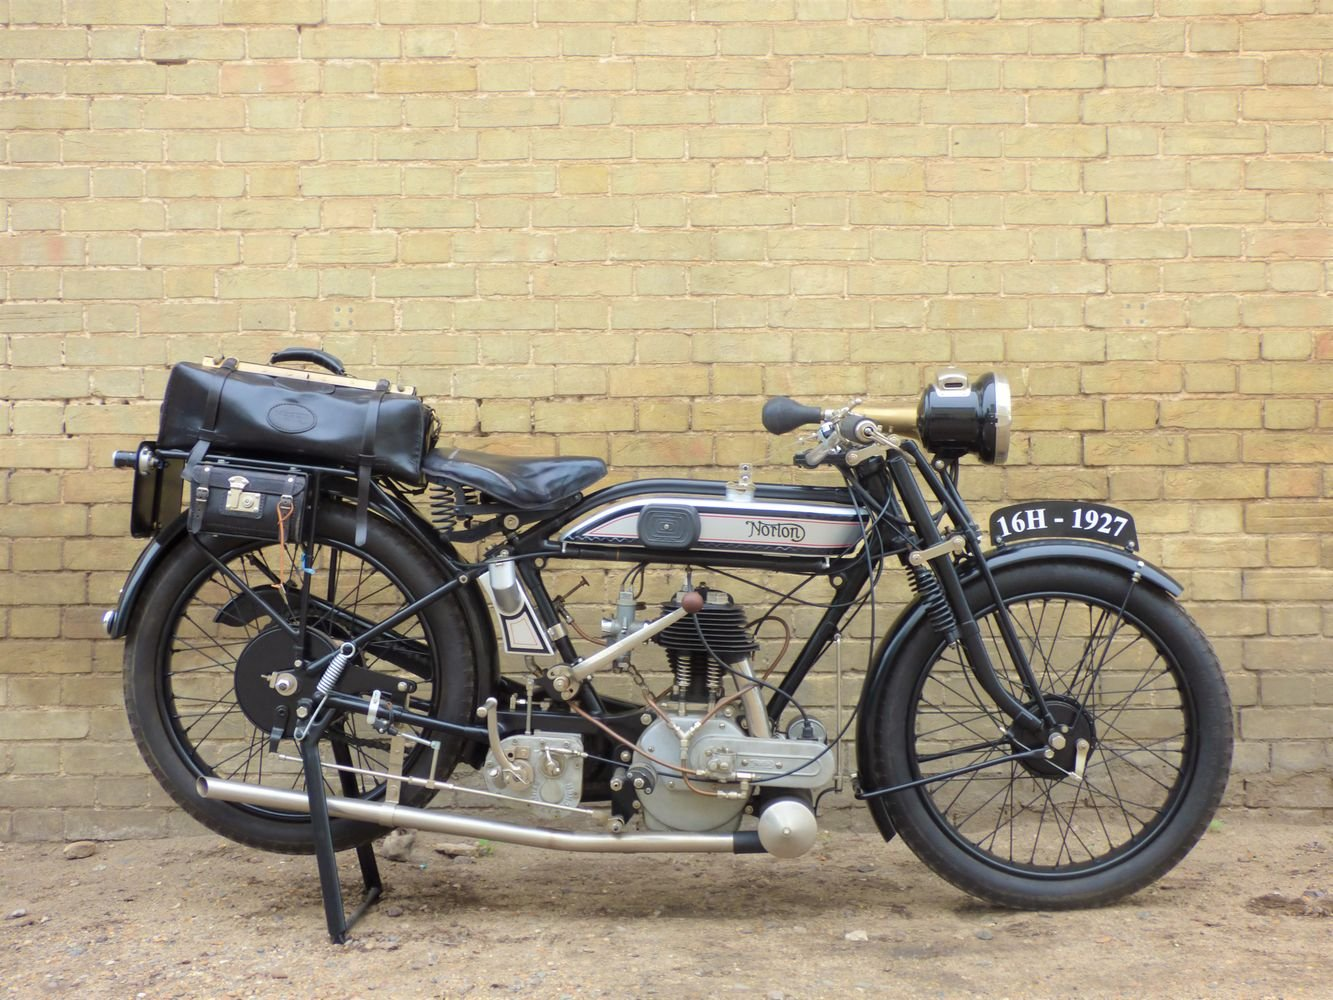 1927 Norton 16H 490cc For Sale (picture 1 of 6)